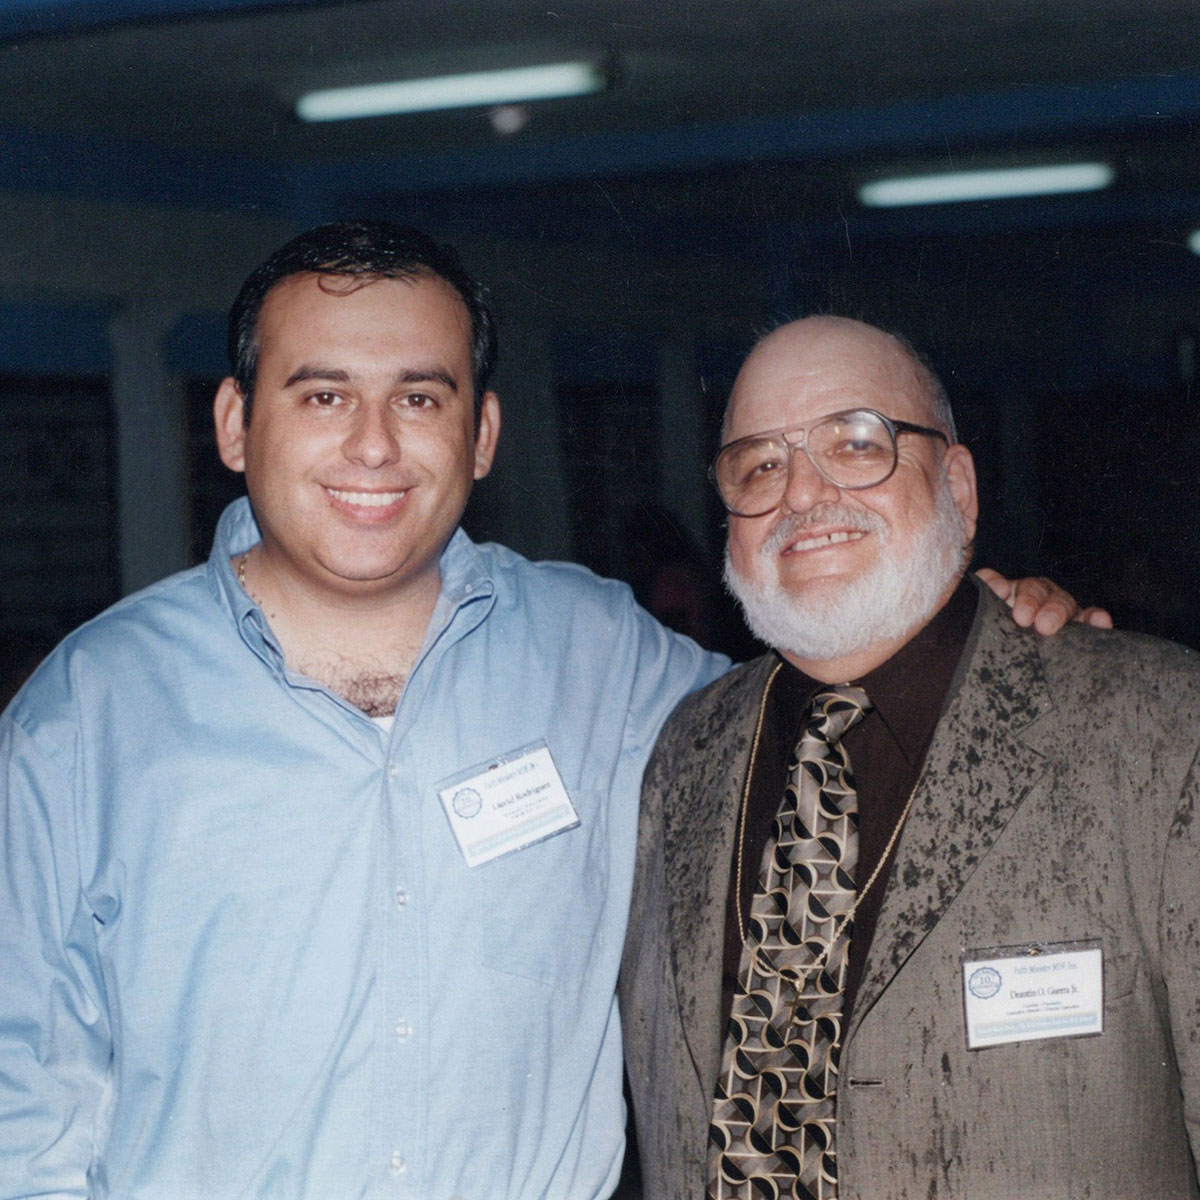 David and Deantin at the 10th anniversary of Faith Ministry in 2004